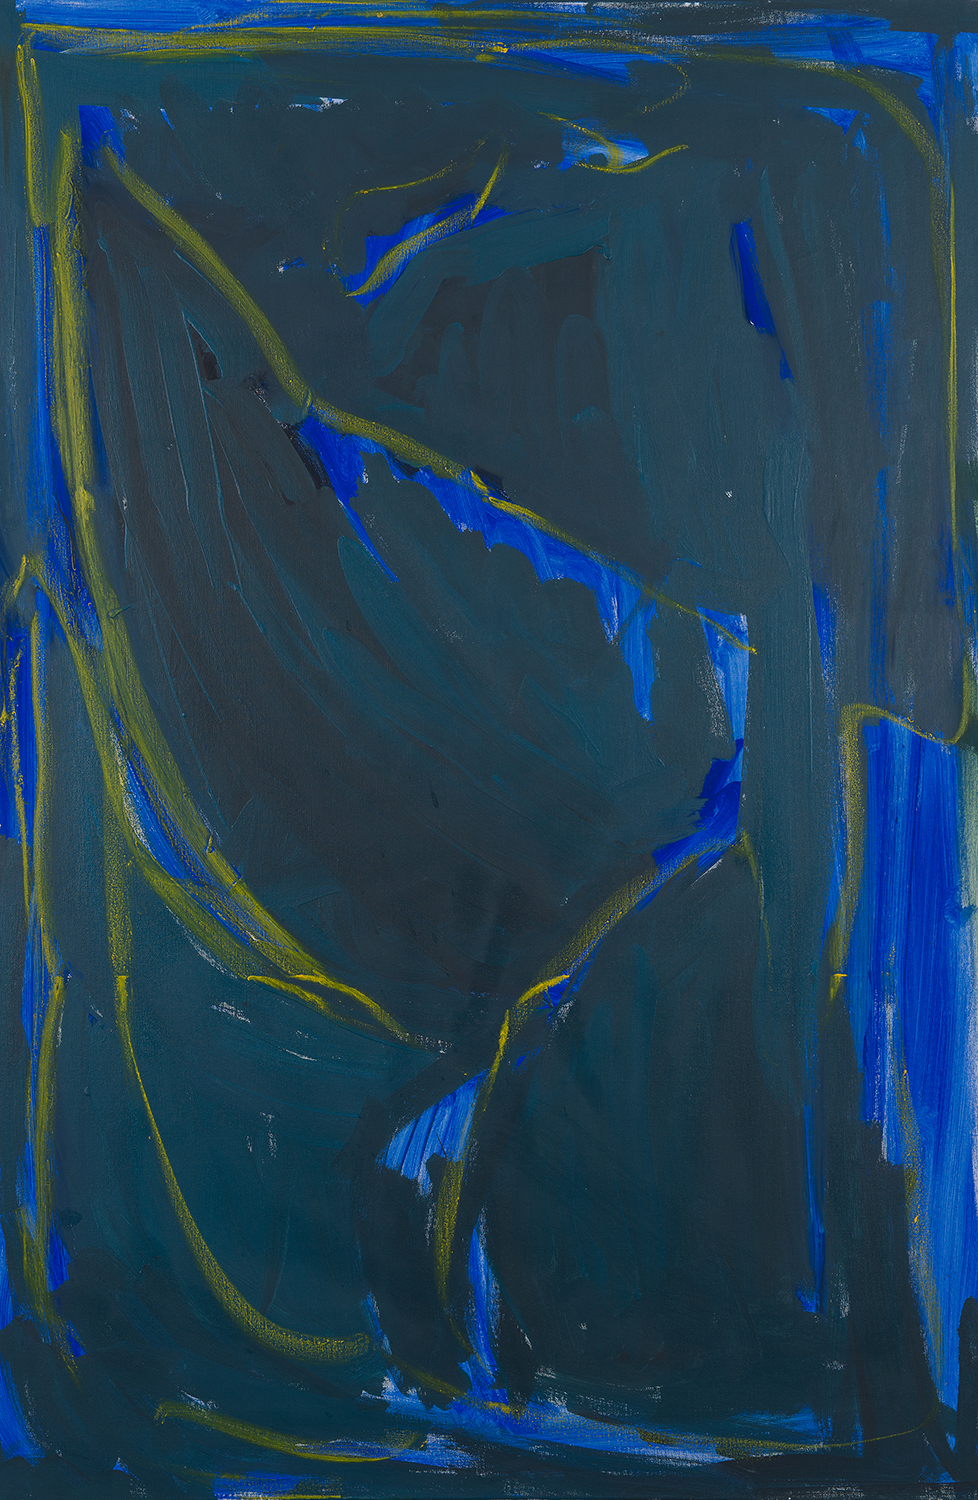 blue, yellow, 2011